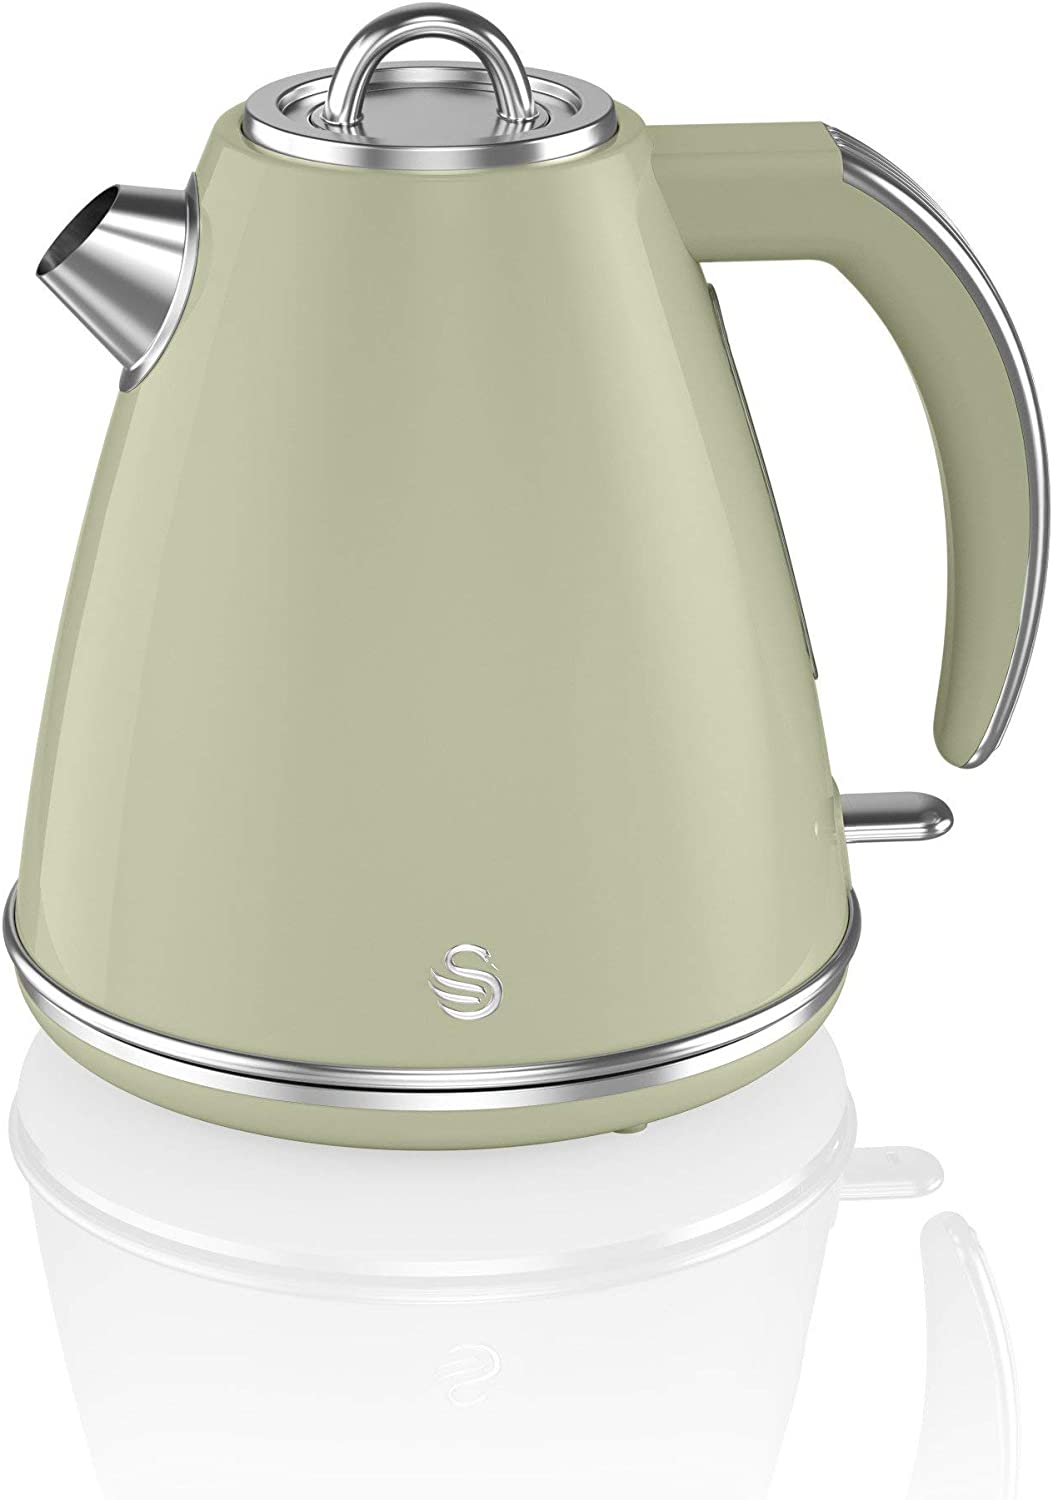 Slide-Out Crumb Tray 360 Degree Base Green Stainless Steel STP7041GN Retro 1.5L Jug Kettle /& 4 Slice Toaster Electronic Browning Control Swan